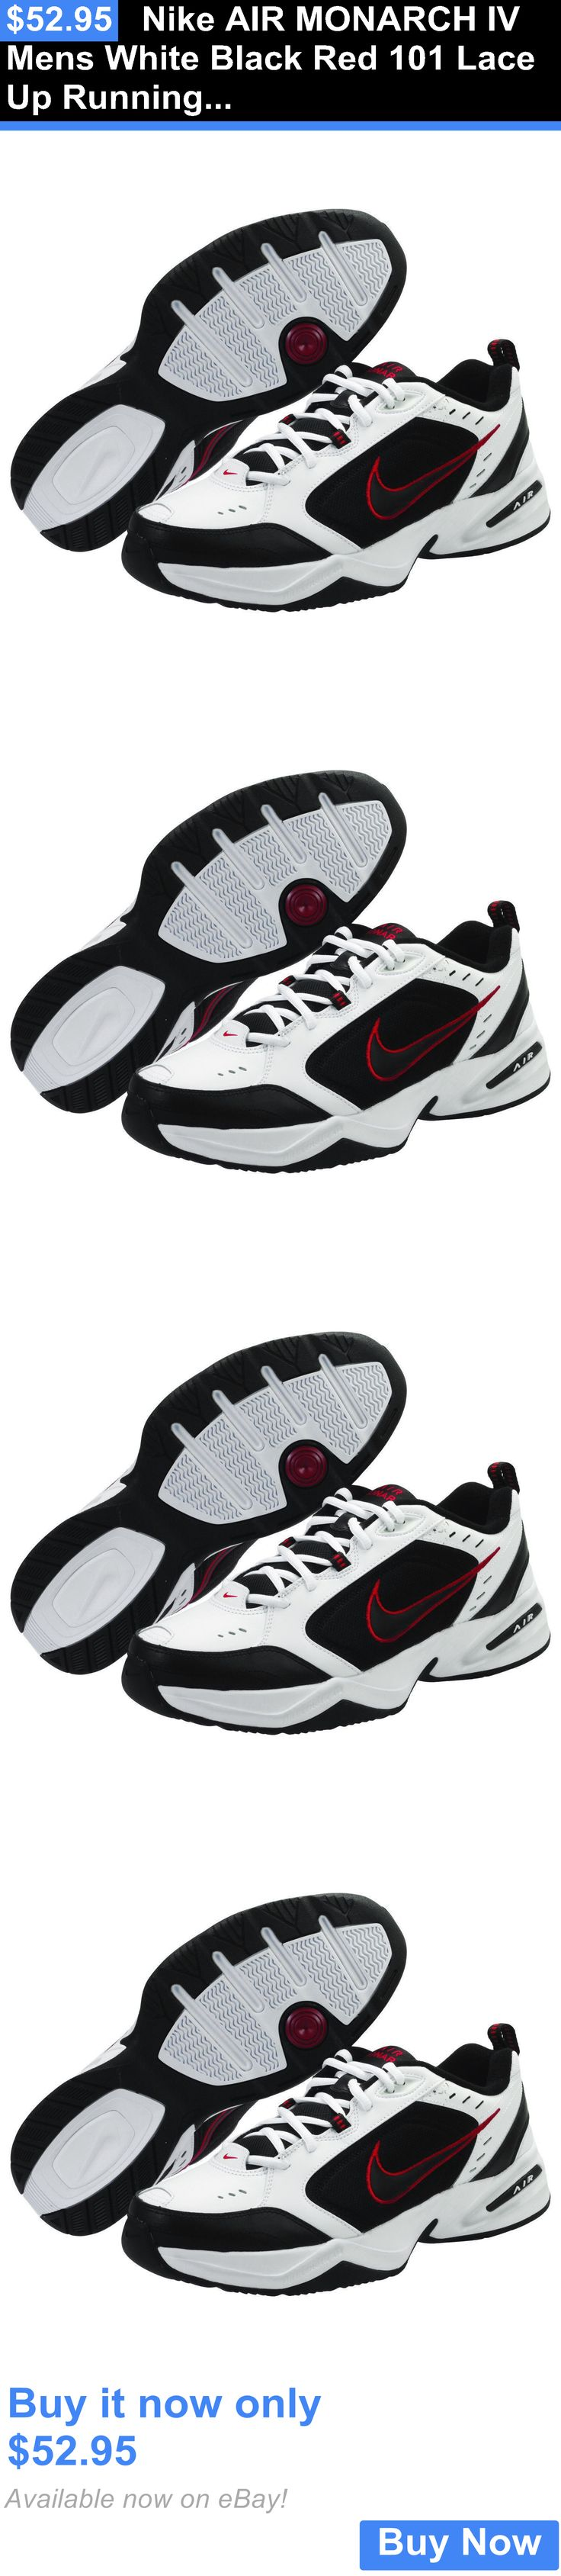 Men Shoes: Nike Air Monarch Iv Mens White Black Red 101 Lace Up Running Training Shoes BUY IT NOW ONLY: $52.95